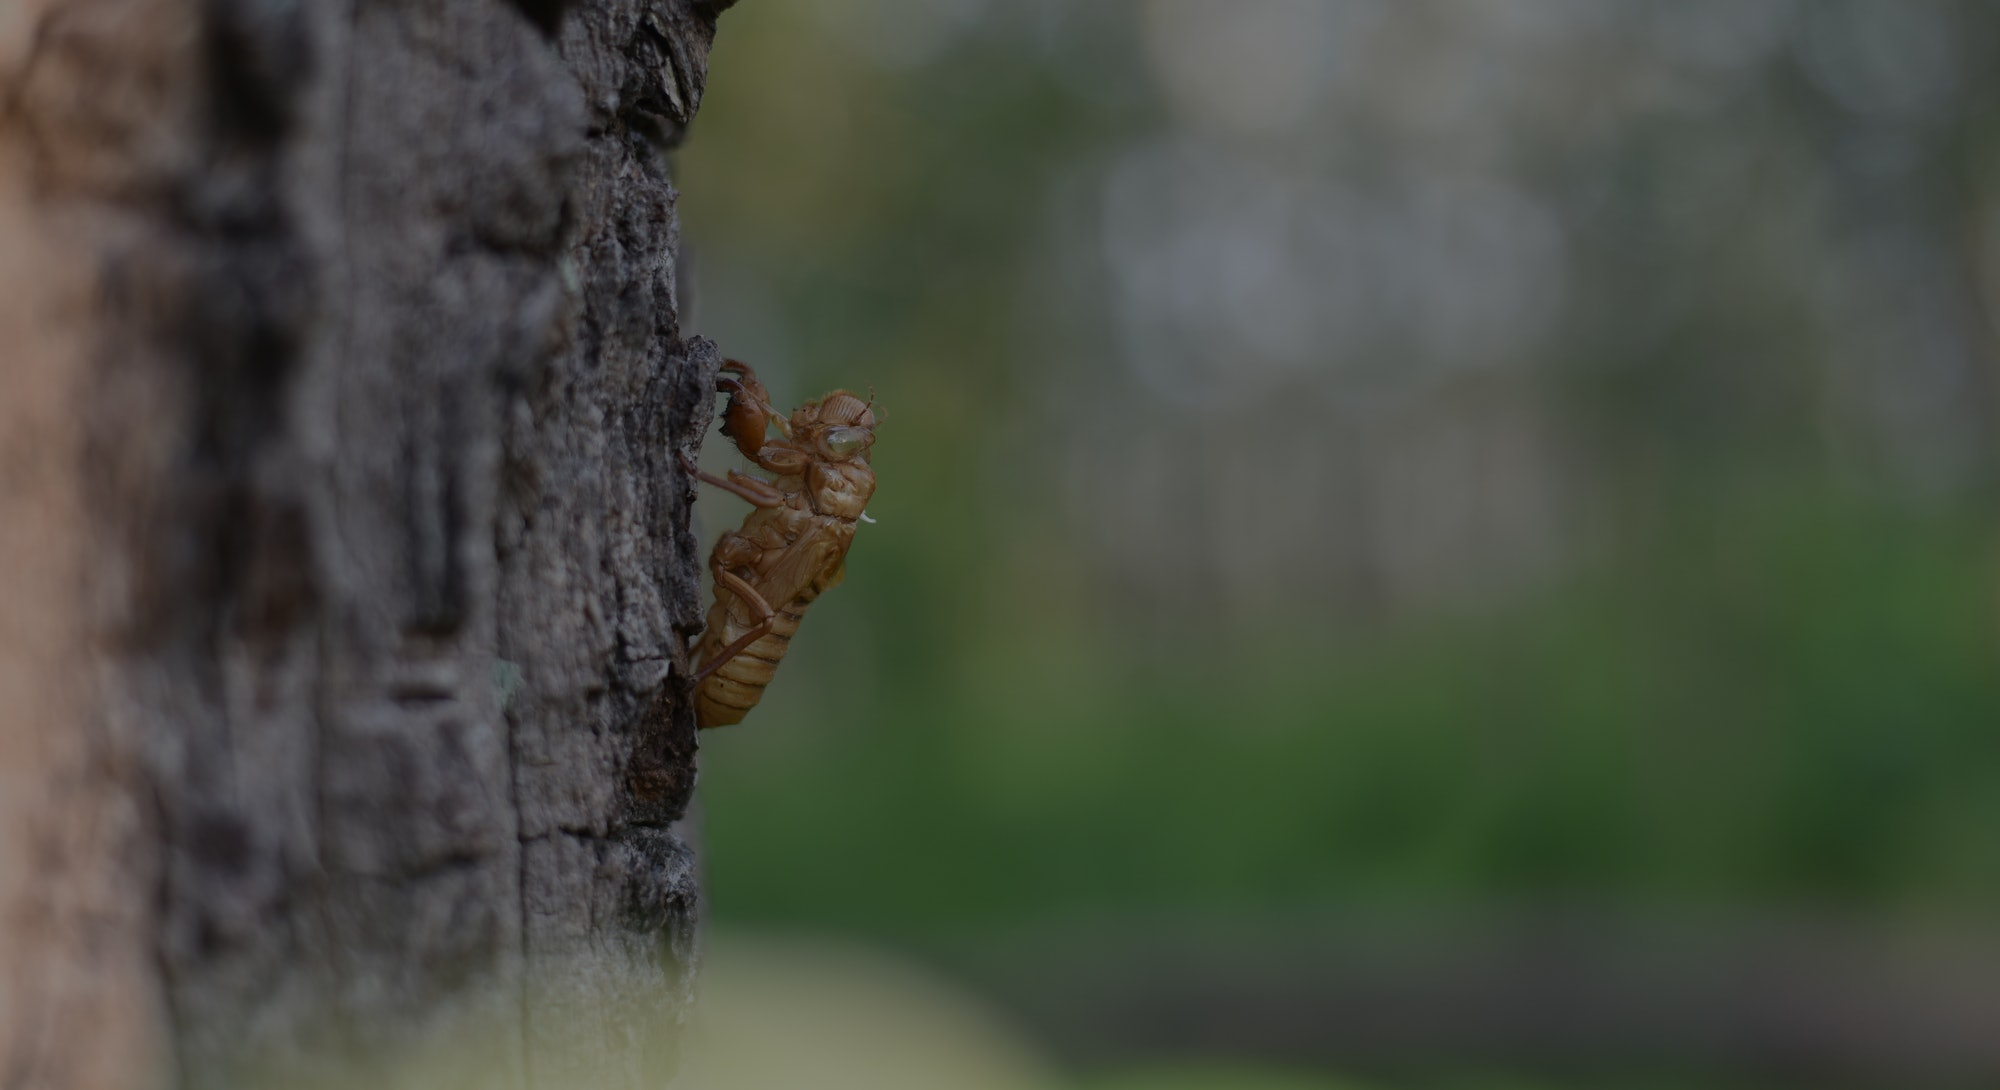 Cicadas molting on the tree. Cicada stains, Beautiful nature scene Insect molting cicadas in nature....